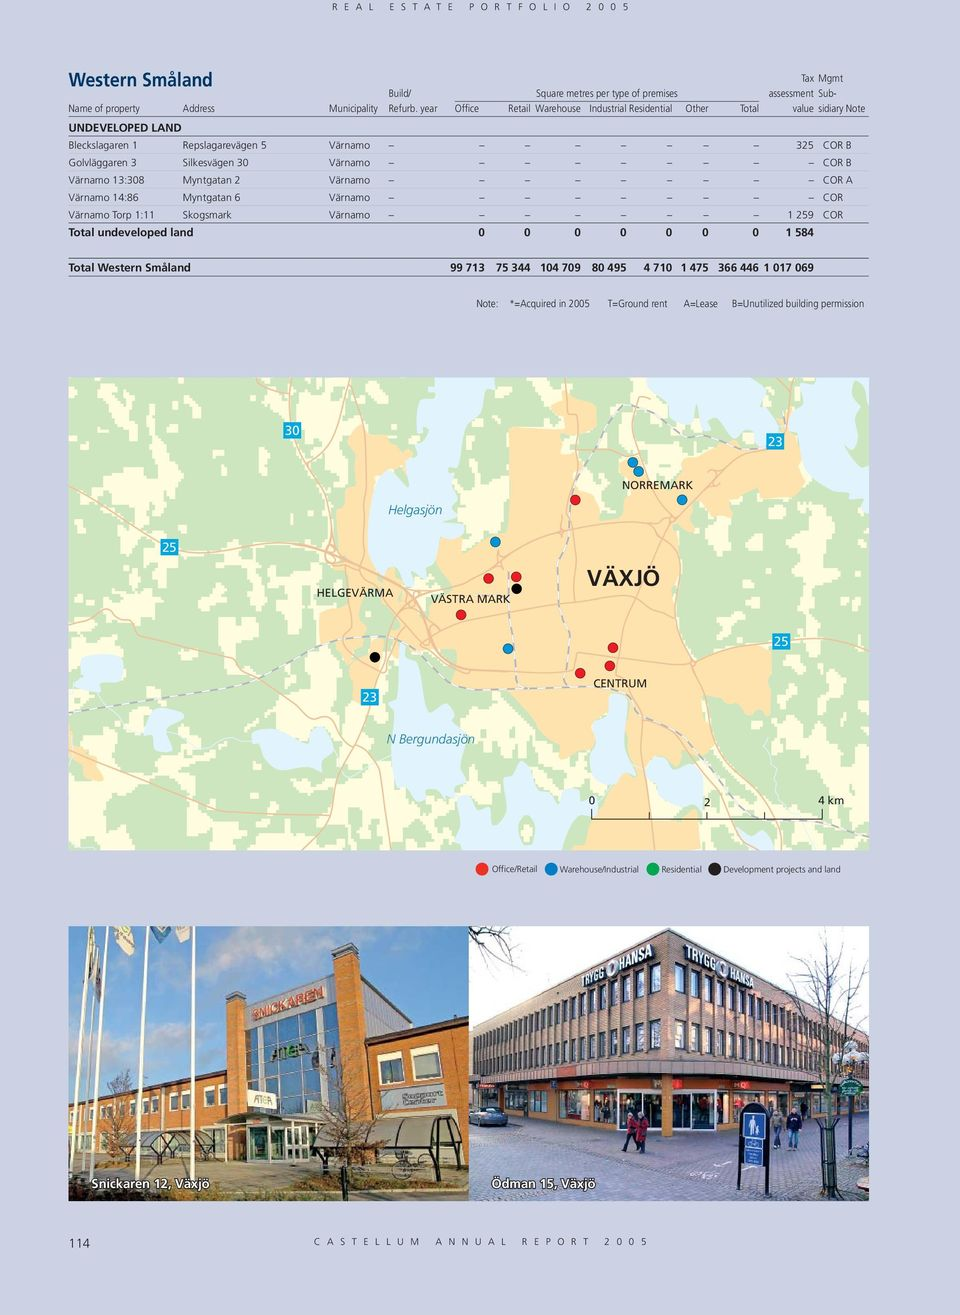 495 4 710 1 475 366 446 1 017 069 Note: *=Acquired in 2005 T=Ground rent A=Lease B=Unutilized building permission 30 23 NORREMARK Helgasjön 25 HELGEVÄRMA